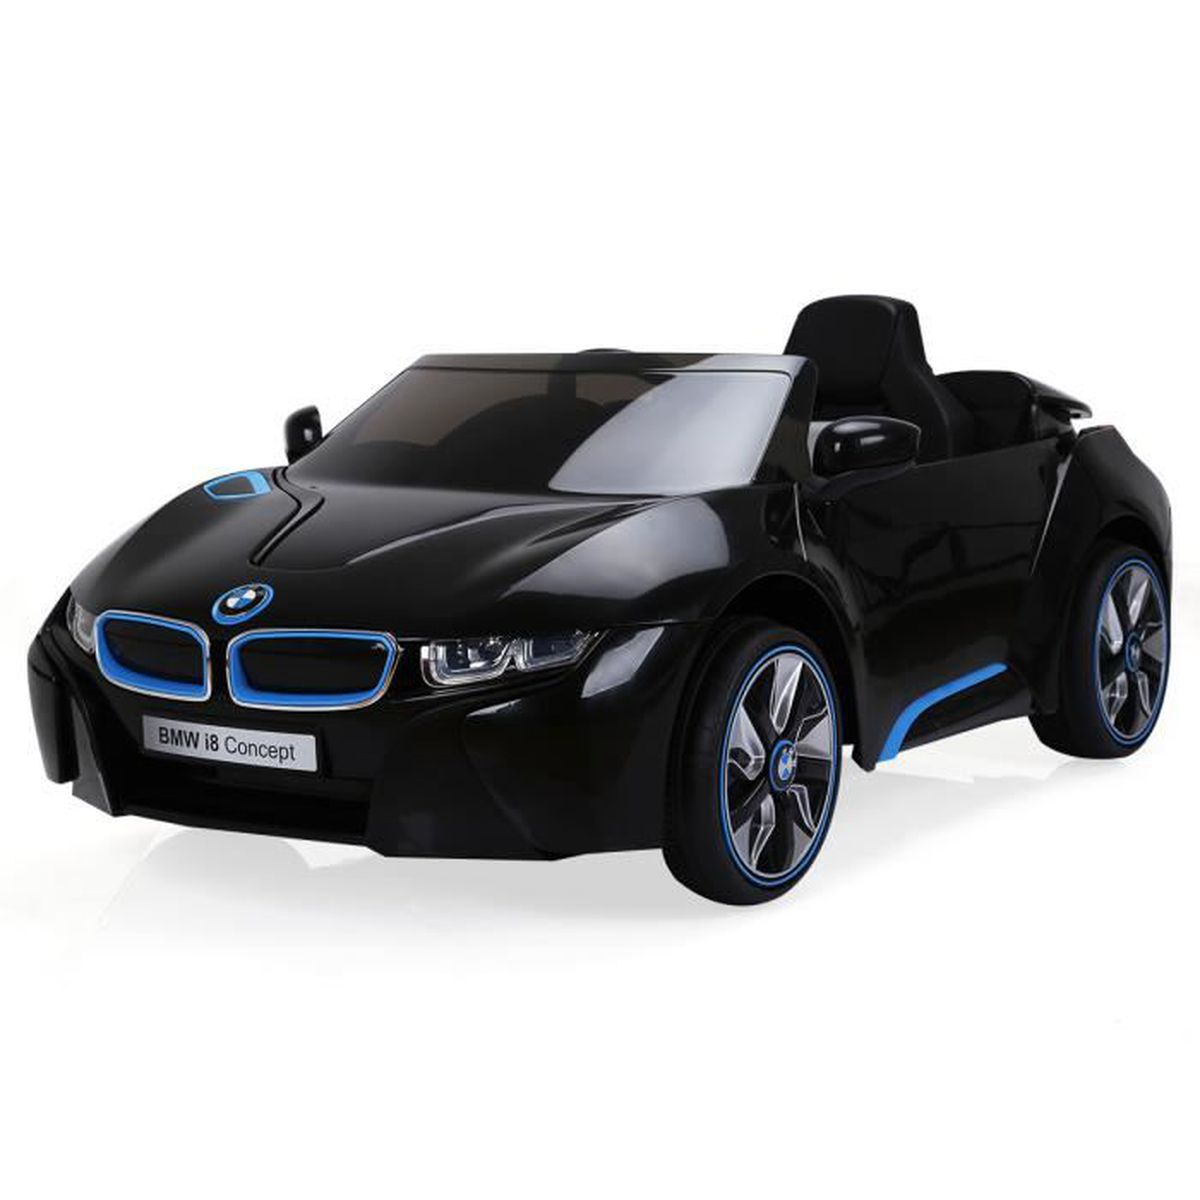 voiture v hicule lectrique bmw i8 pour enfant jouet mp3. Black Bedroom Furniture Sets. Home Design Ideas